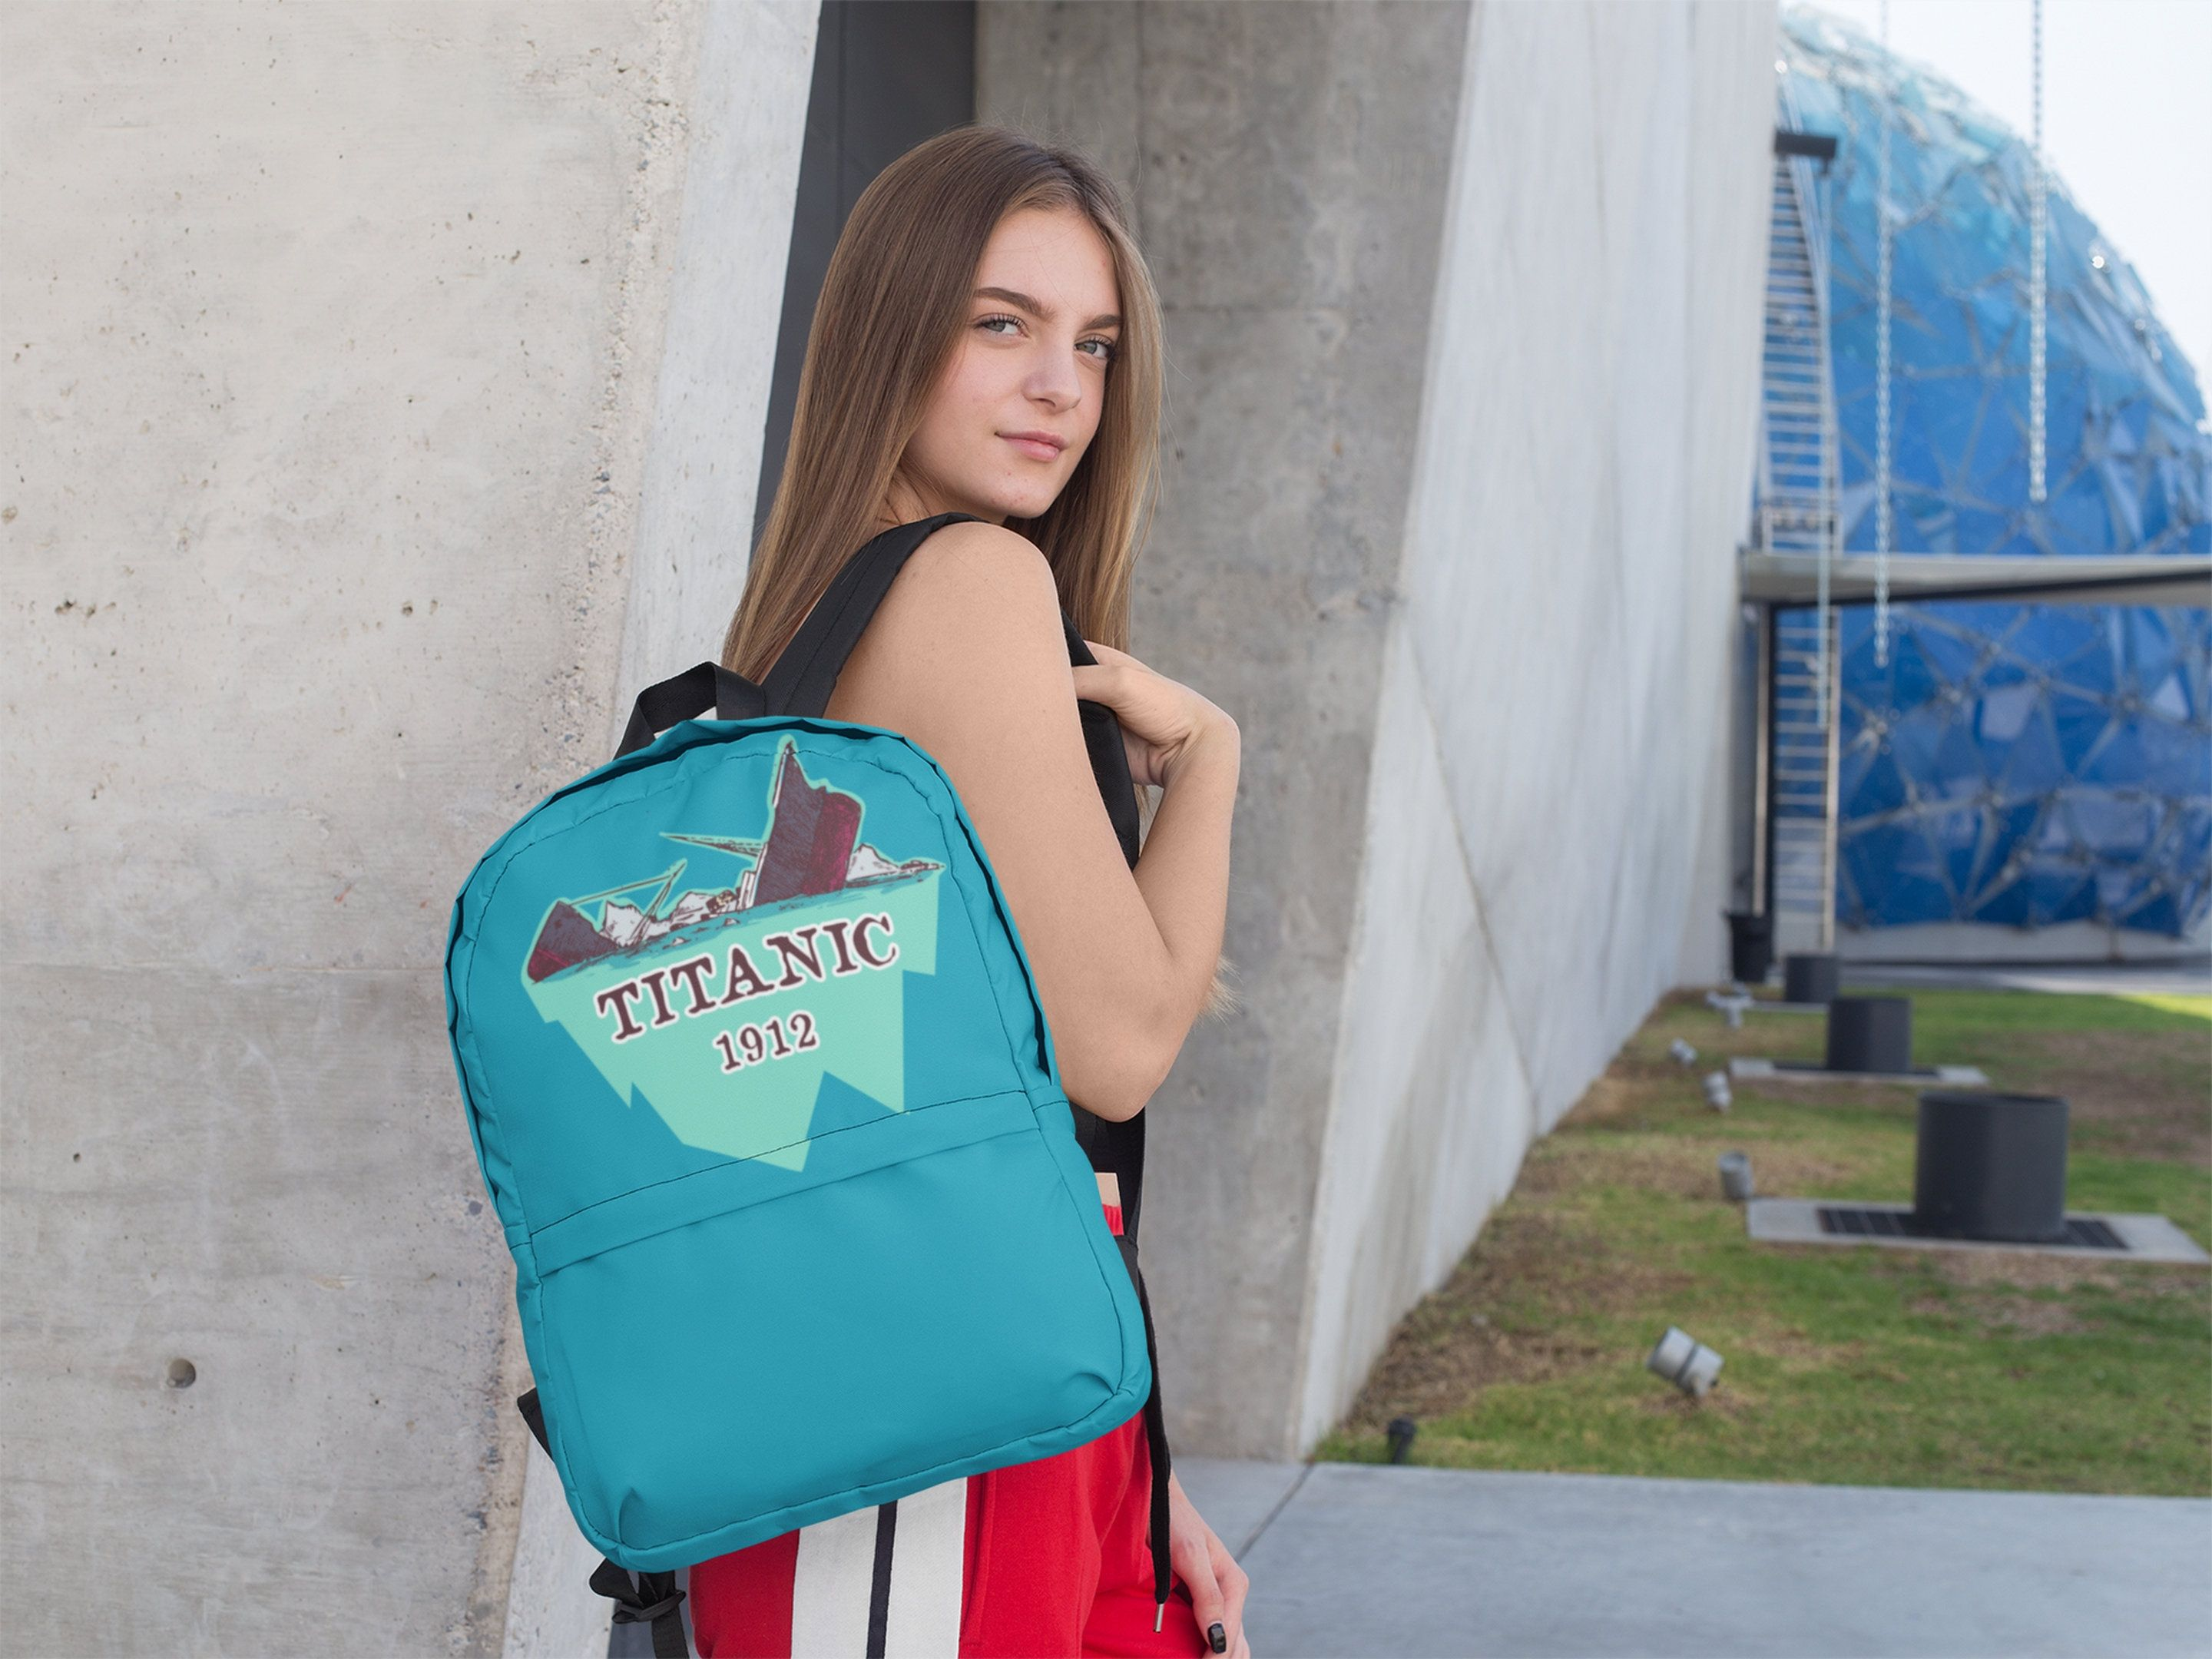 Titanic Art Backpack For Pupils Amp Students Funny T For